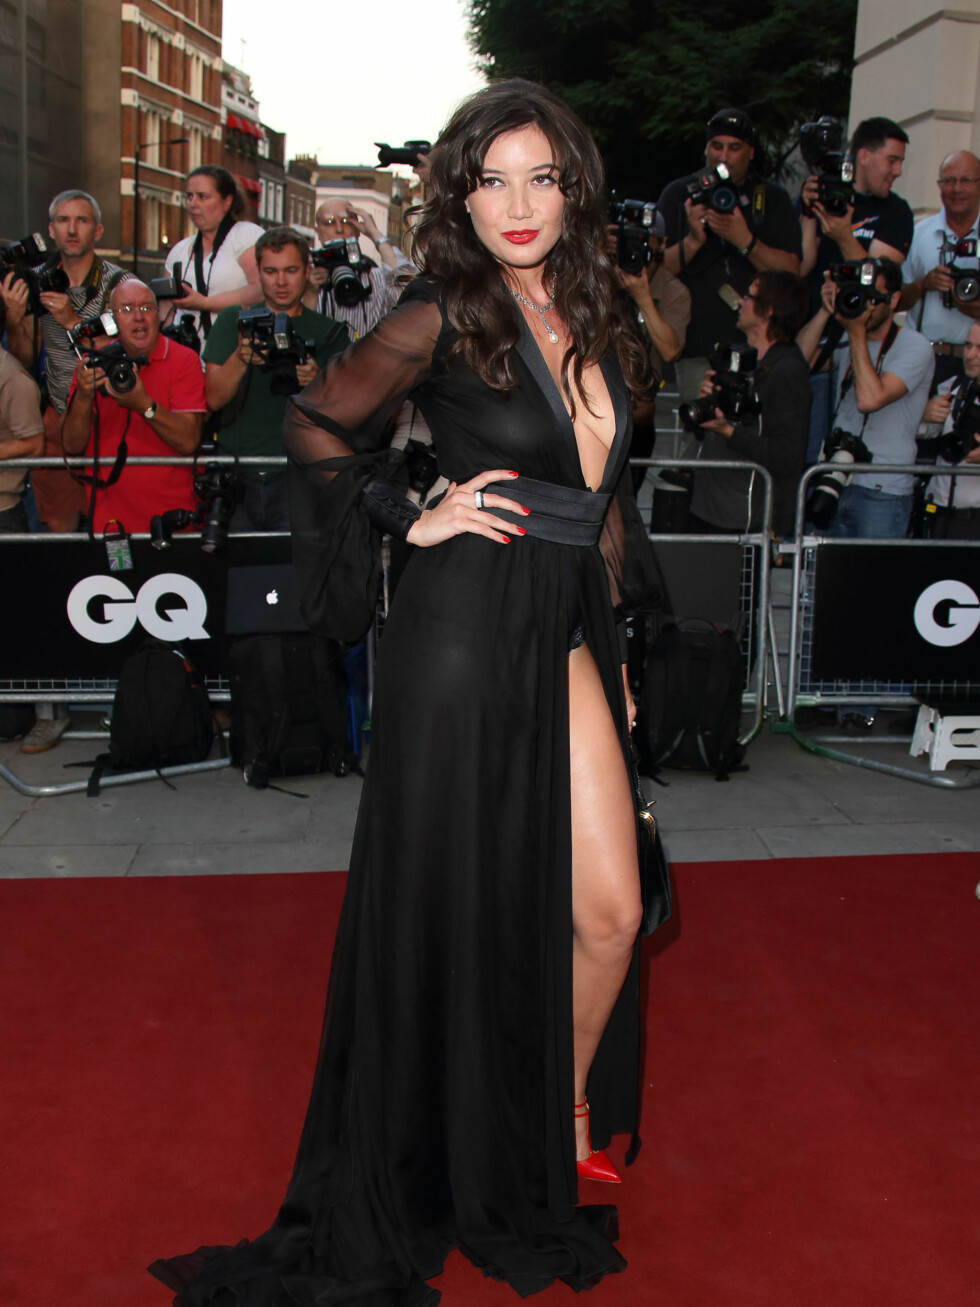 Daisy Lowe Foto: WireImage/Getty Images/All Over Press